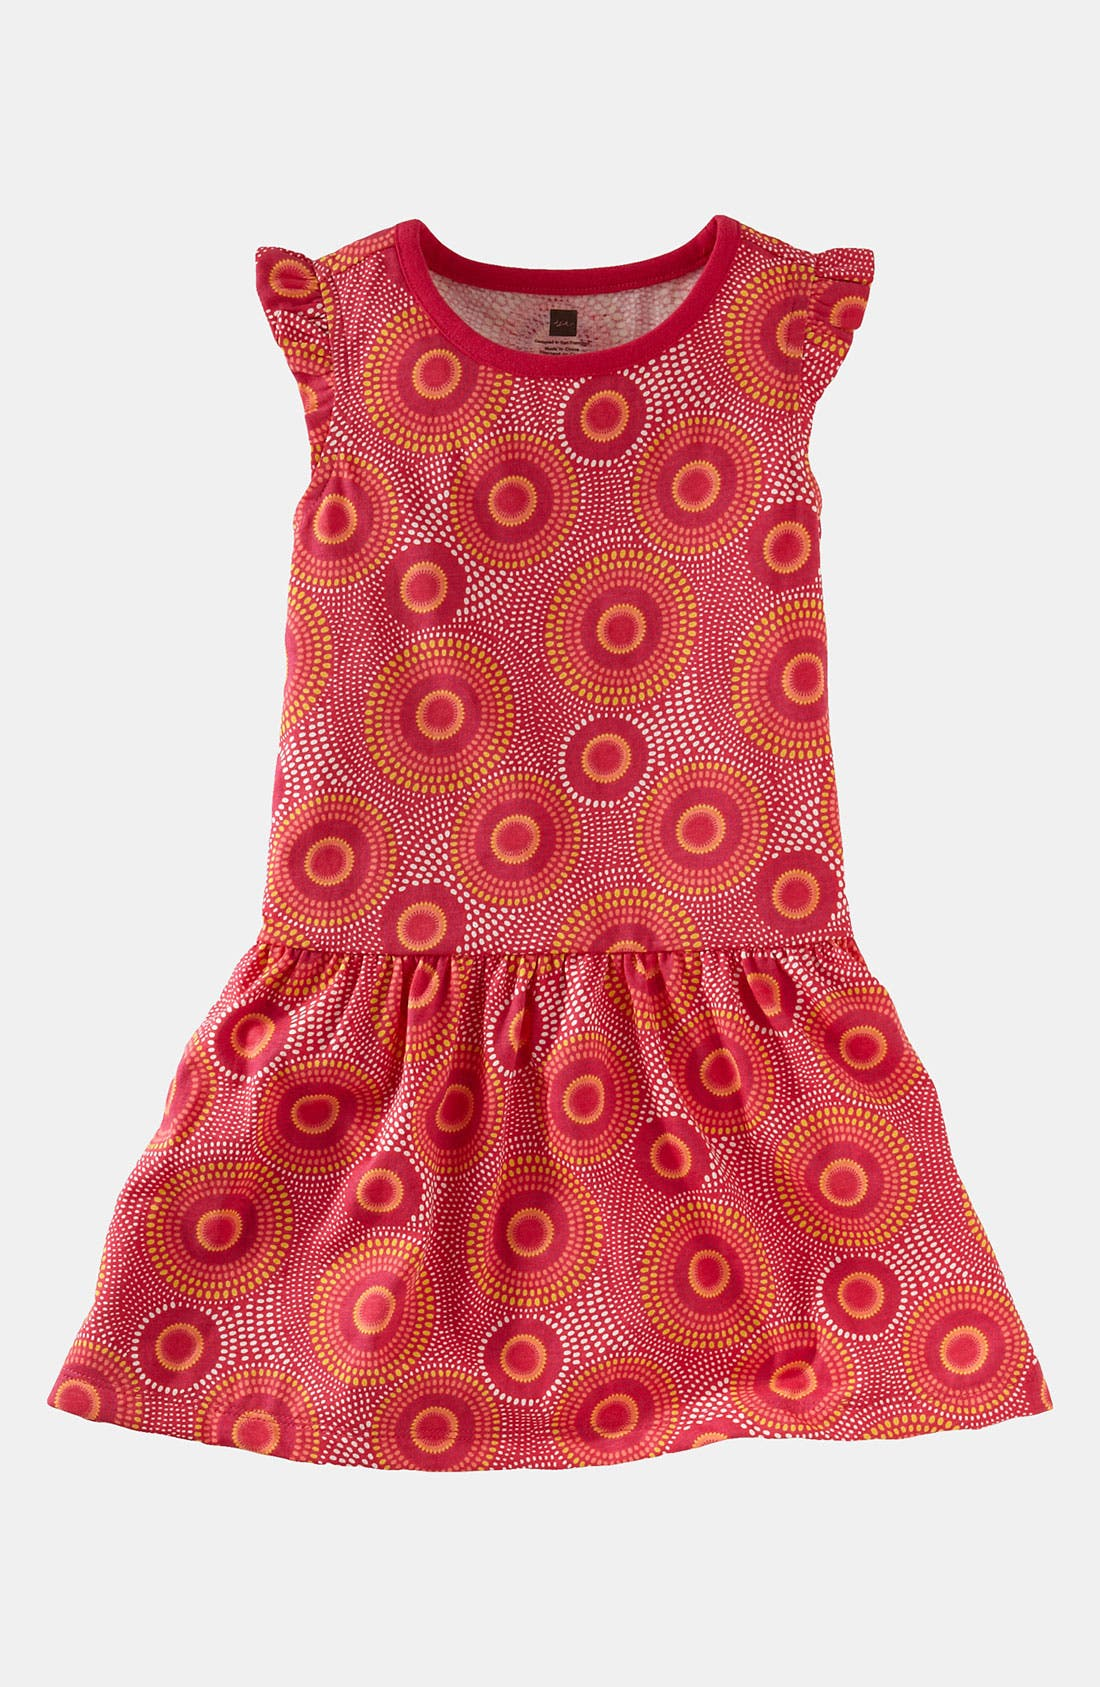 Main Image - Tea Collection 'Elm' Flutter Dress (Infant)